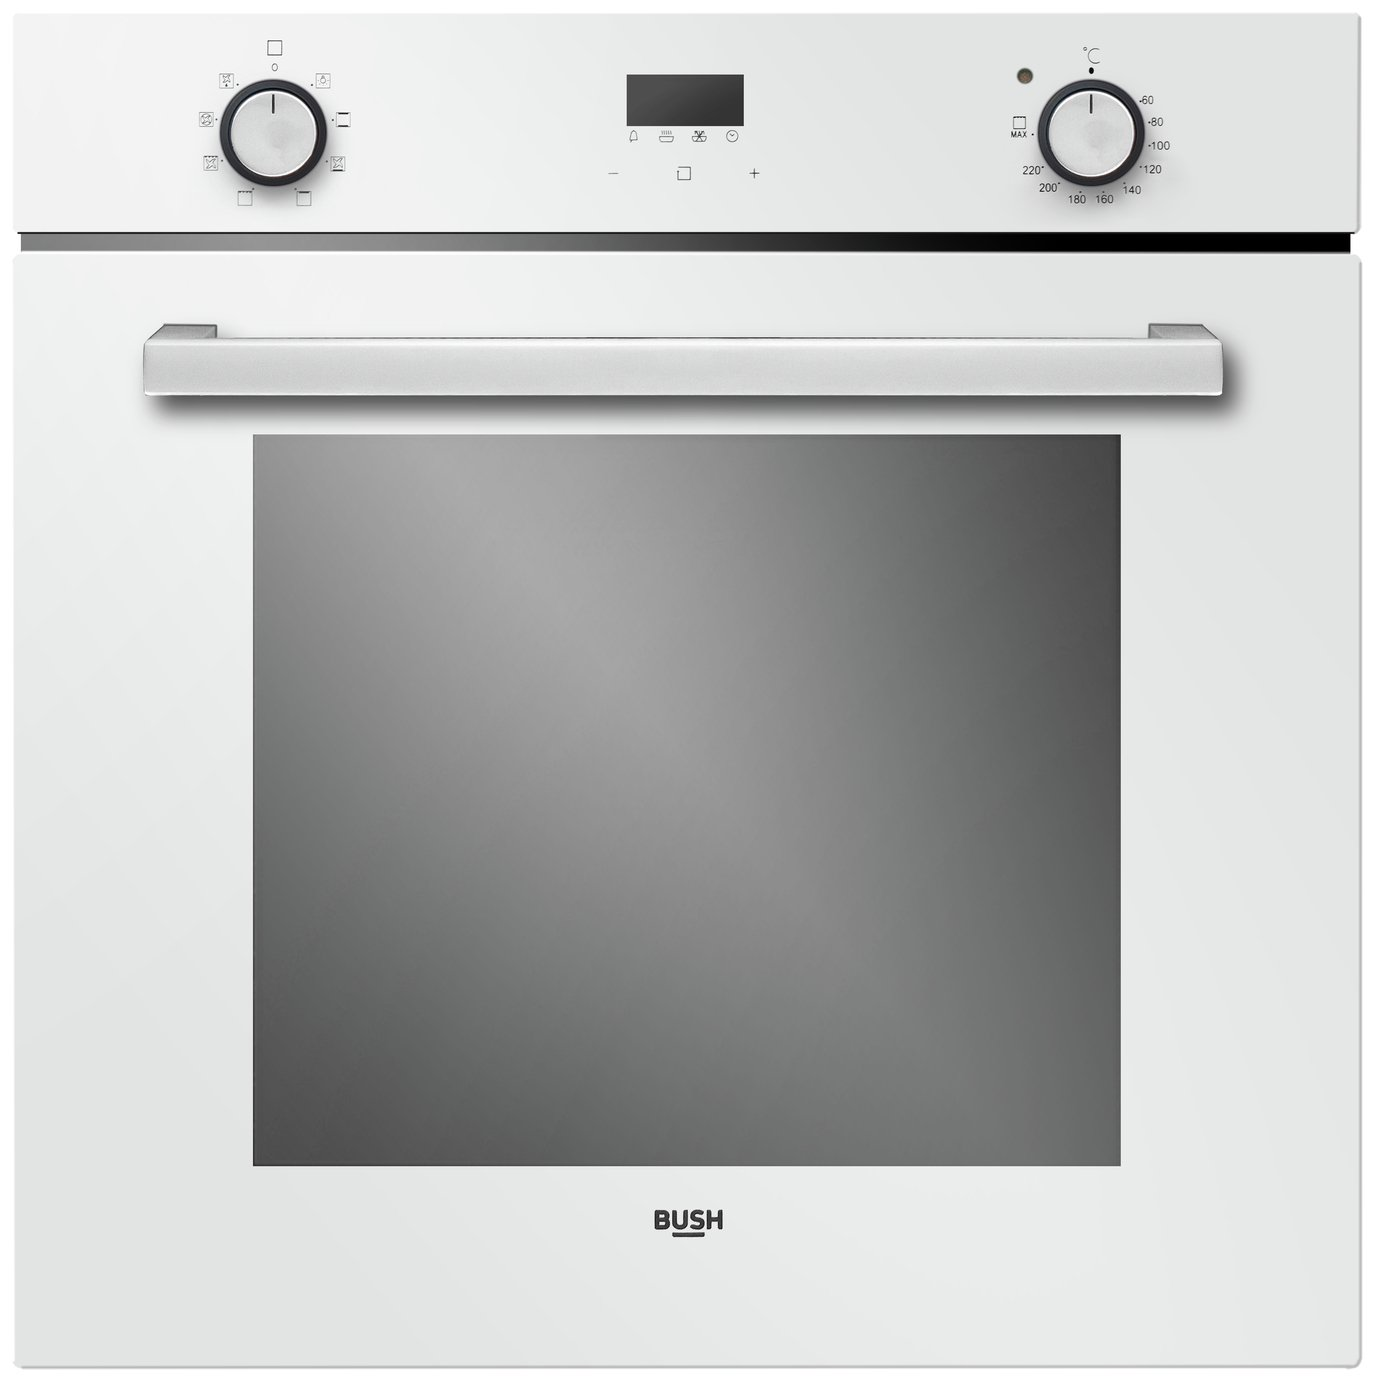 Bush LSWPMO Built In Single Electric Oven - White